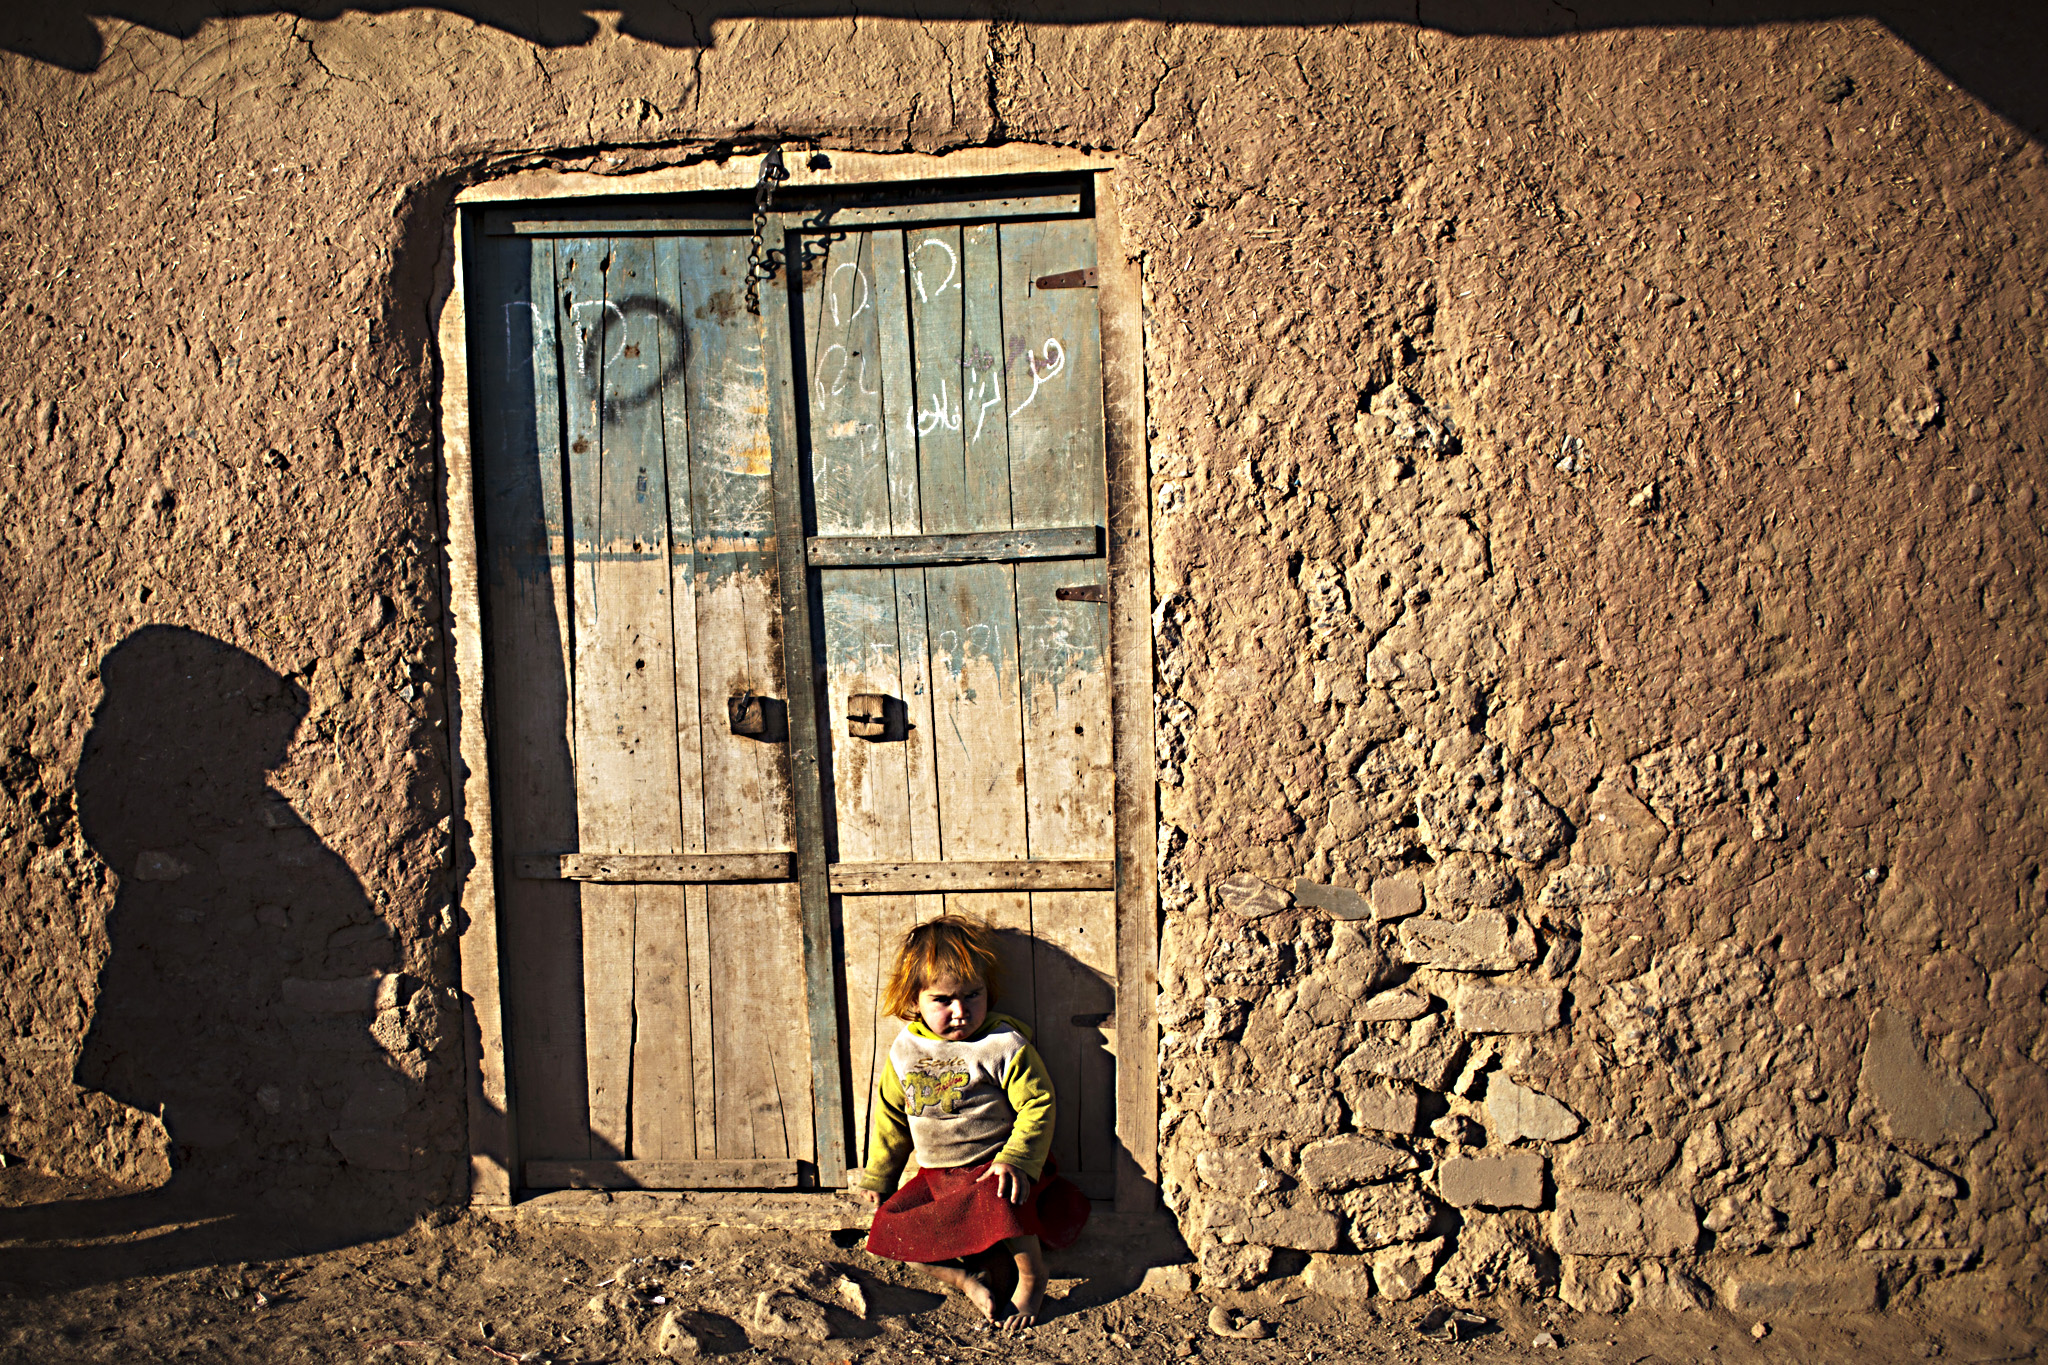 An Afghan refugee child sits at the doorway of a mud home in a slum on the outskirts of Islamabad, Pakistan, Monday, Feb. 9, 2015.